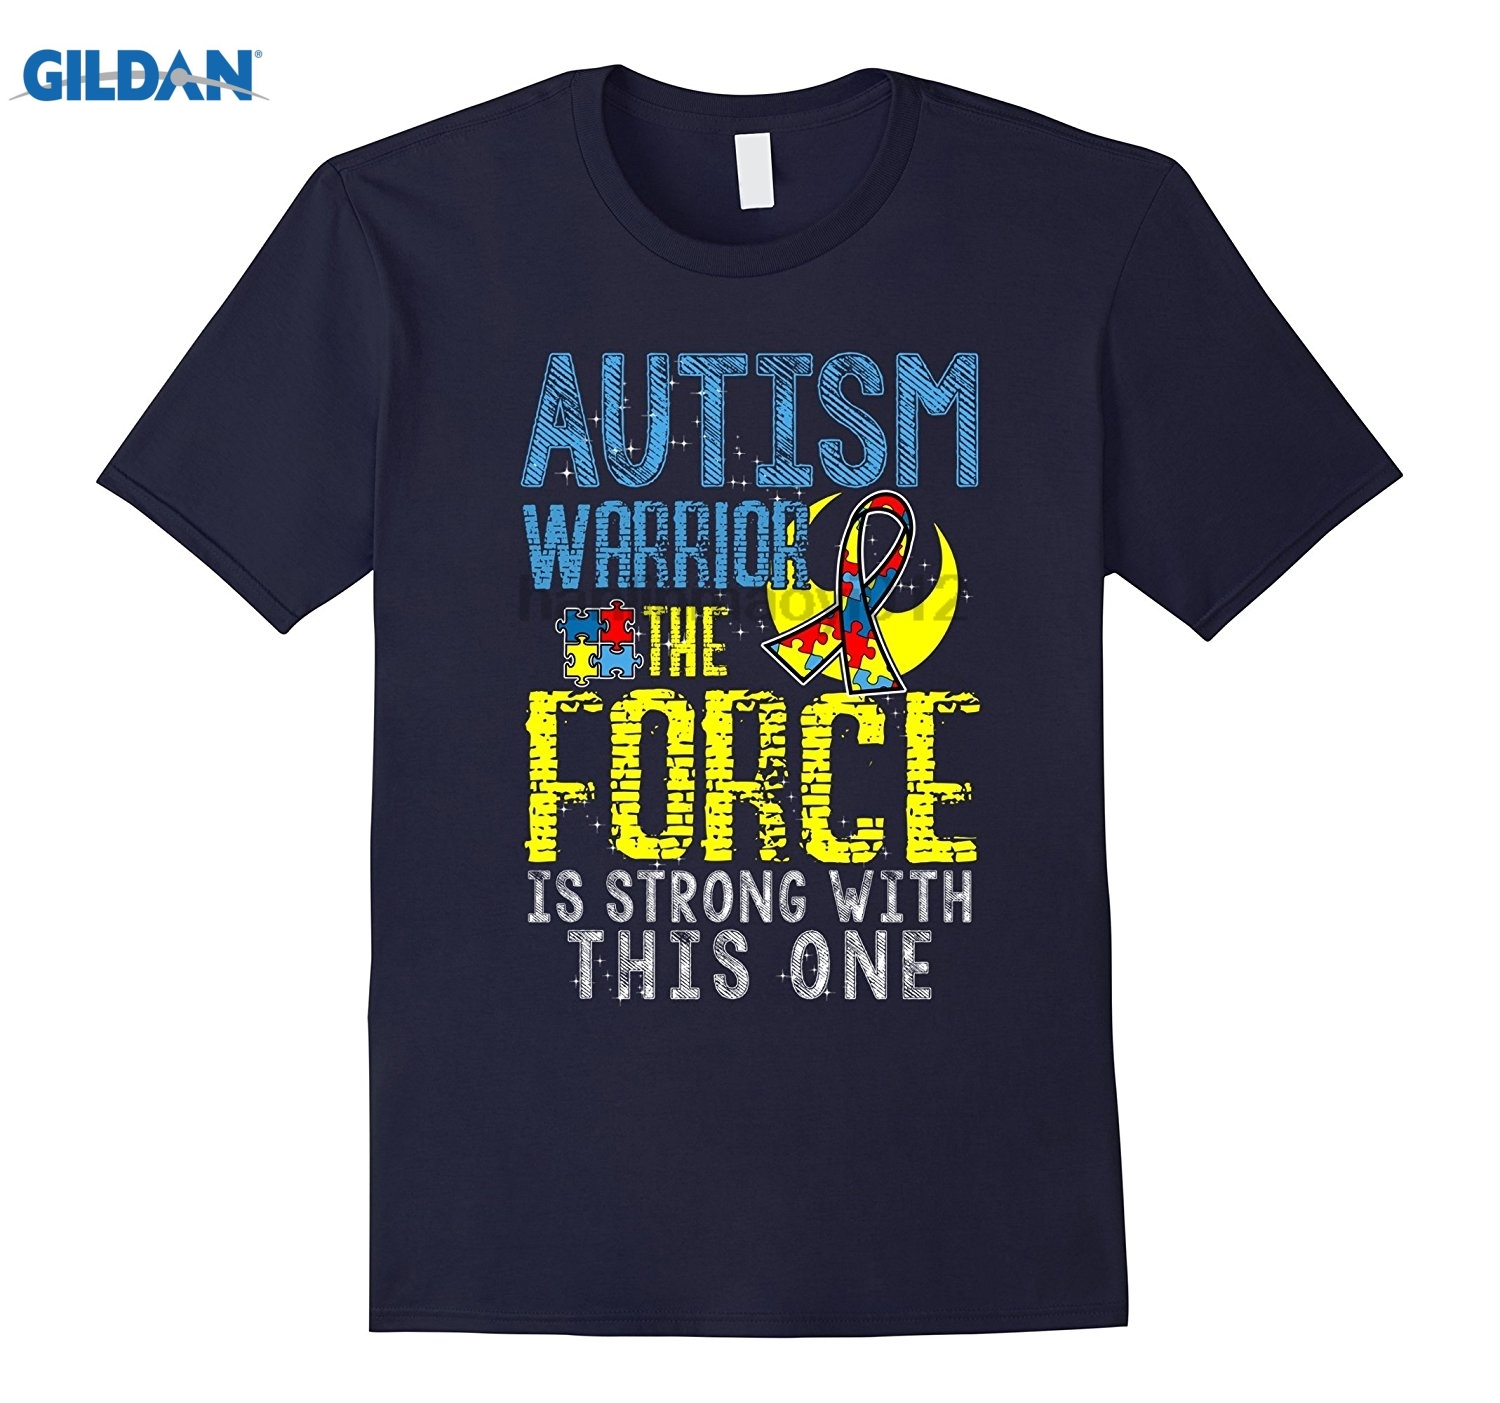 GILDAN Autism Awareness Warrior Force Strong Autism t-shirts gifts Mothers Day Ms. T-shirt